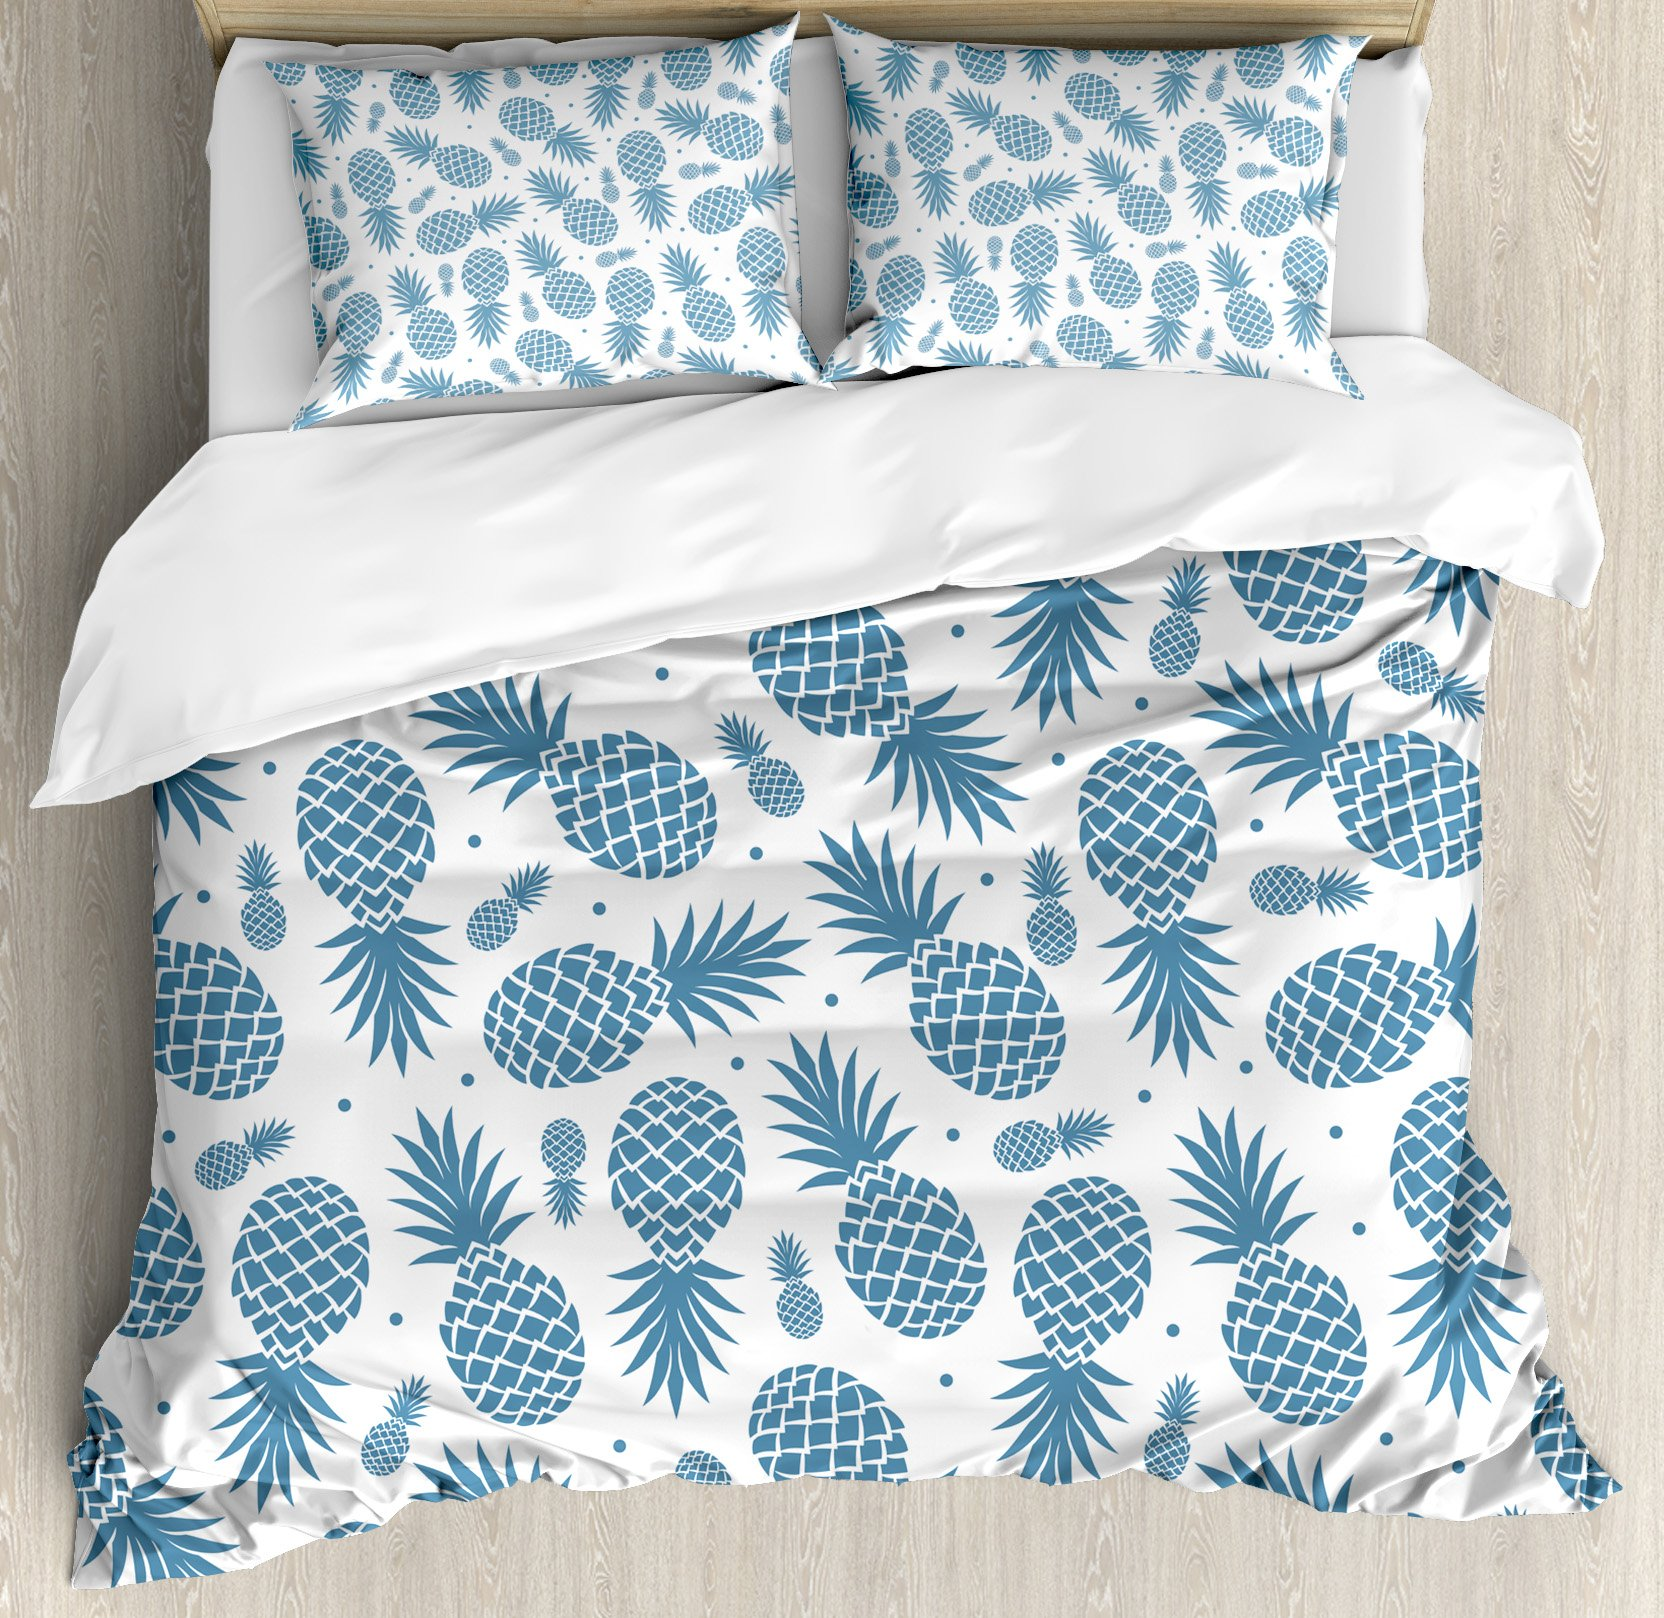 Pineapple Duvet Cover Set King Size by Ambesonne, Island Themed Minimalistic Multi-Sized Tropic Fruity Pineapple Printed Vintage, Decorative 3 Piece Bedding Set with 2 Pillow Shams, Blue White